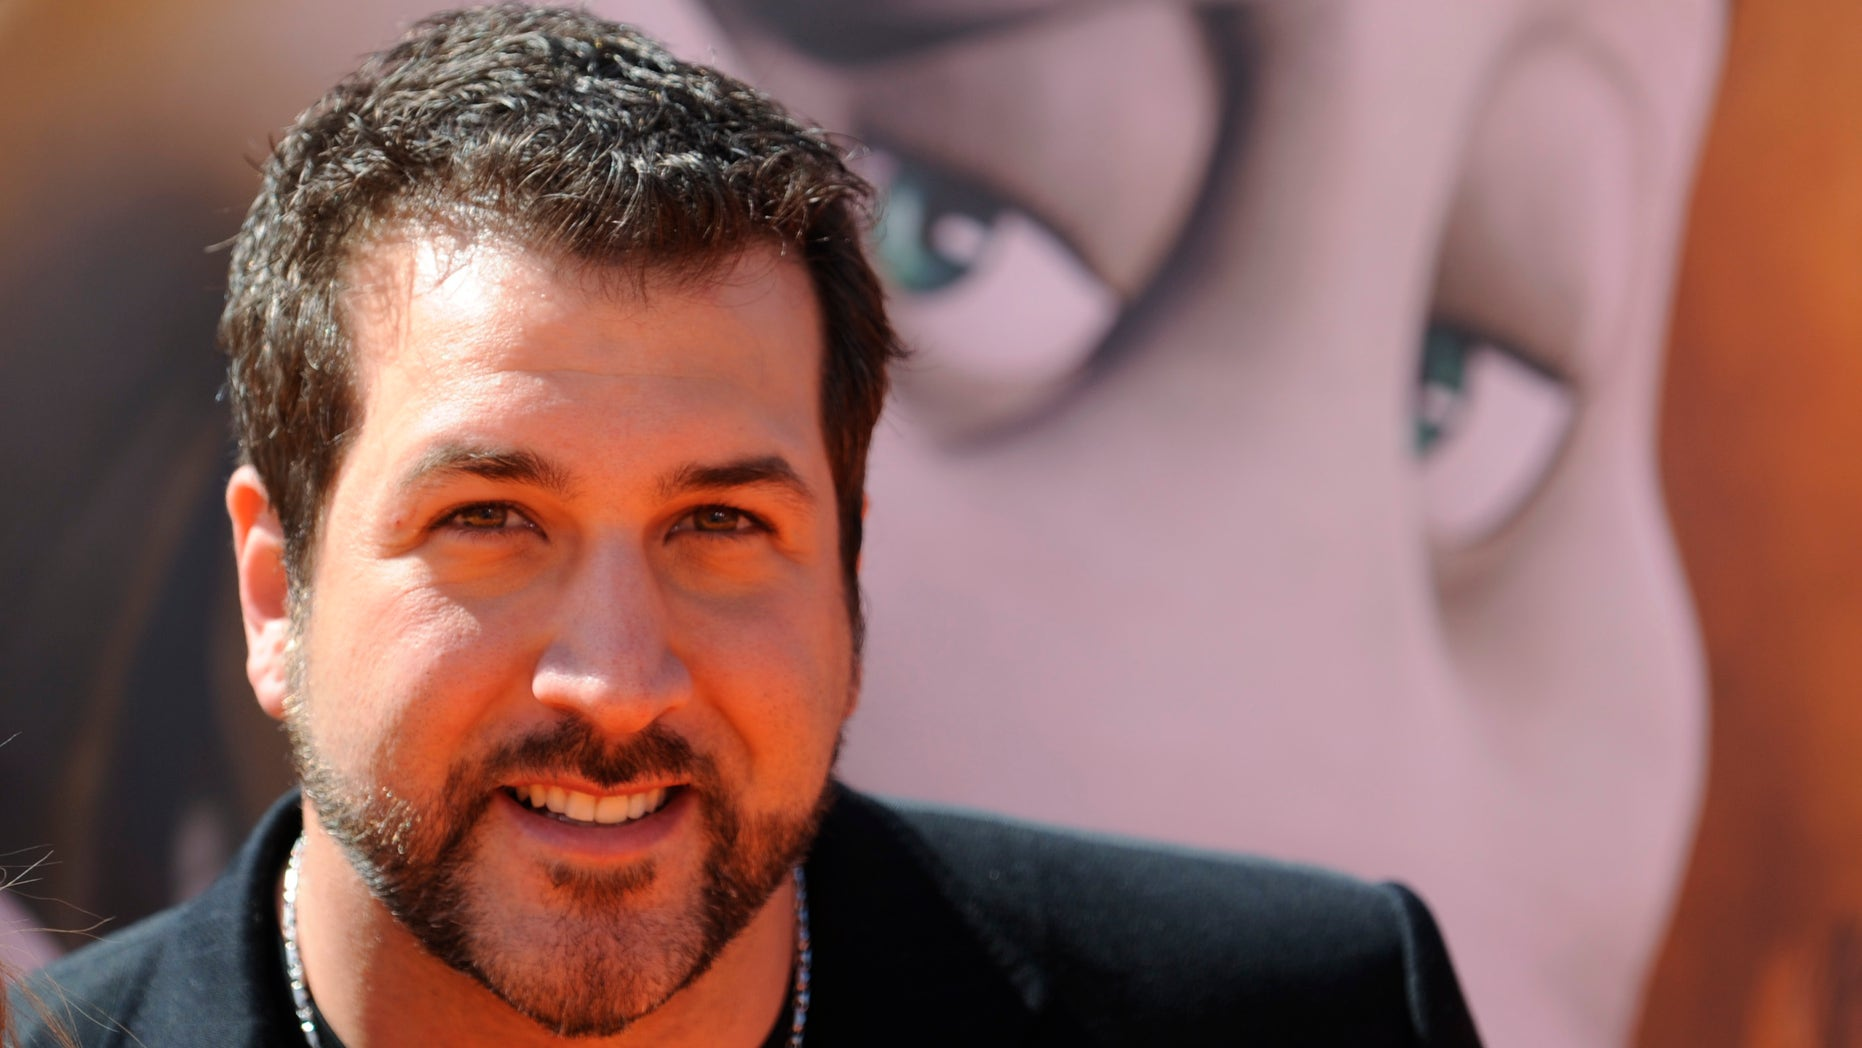 """March 8, 2008. Joey Fatone attends the premiere of the film """"Horton Hears a Who!"""" in Los Angeles."""